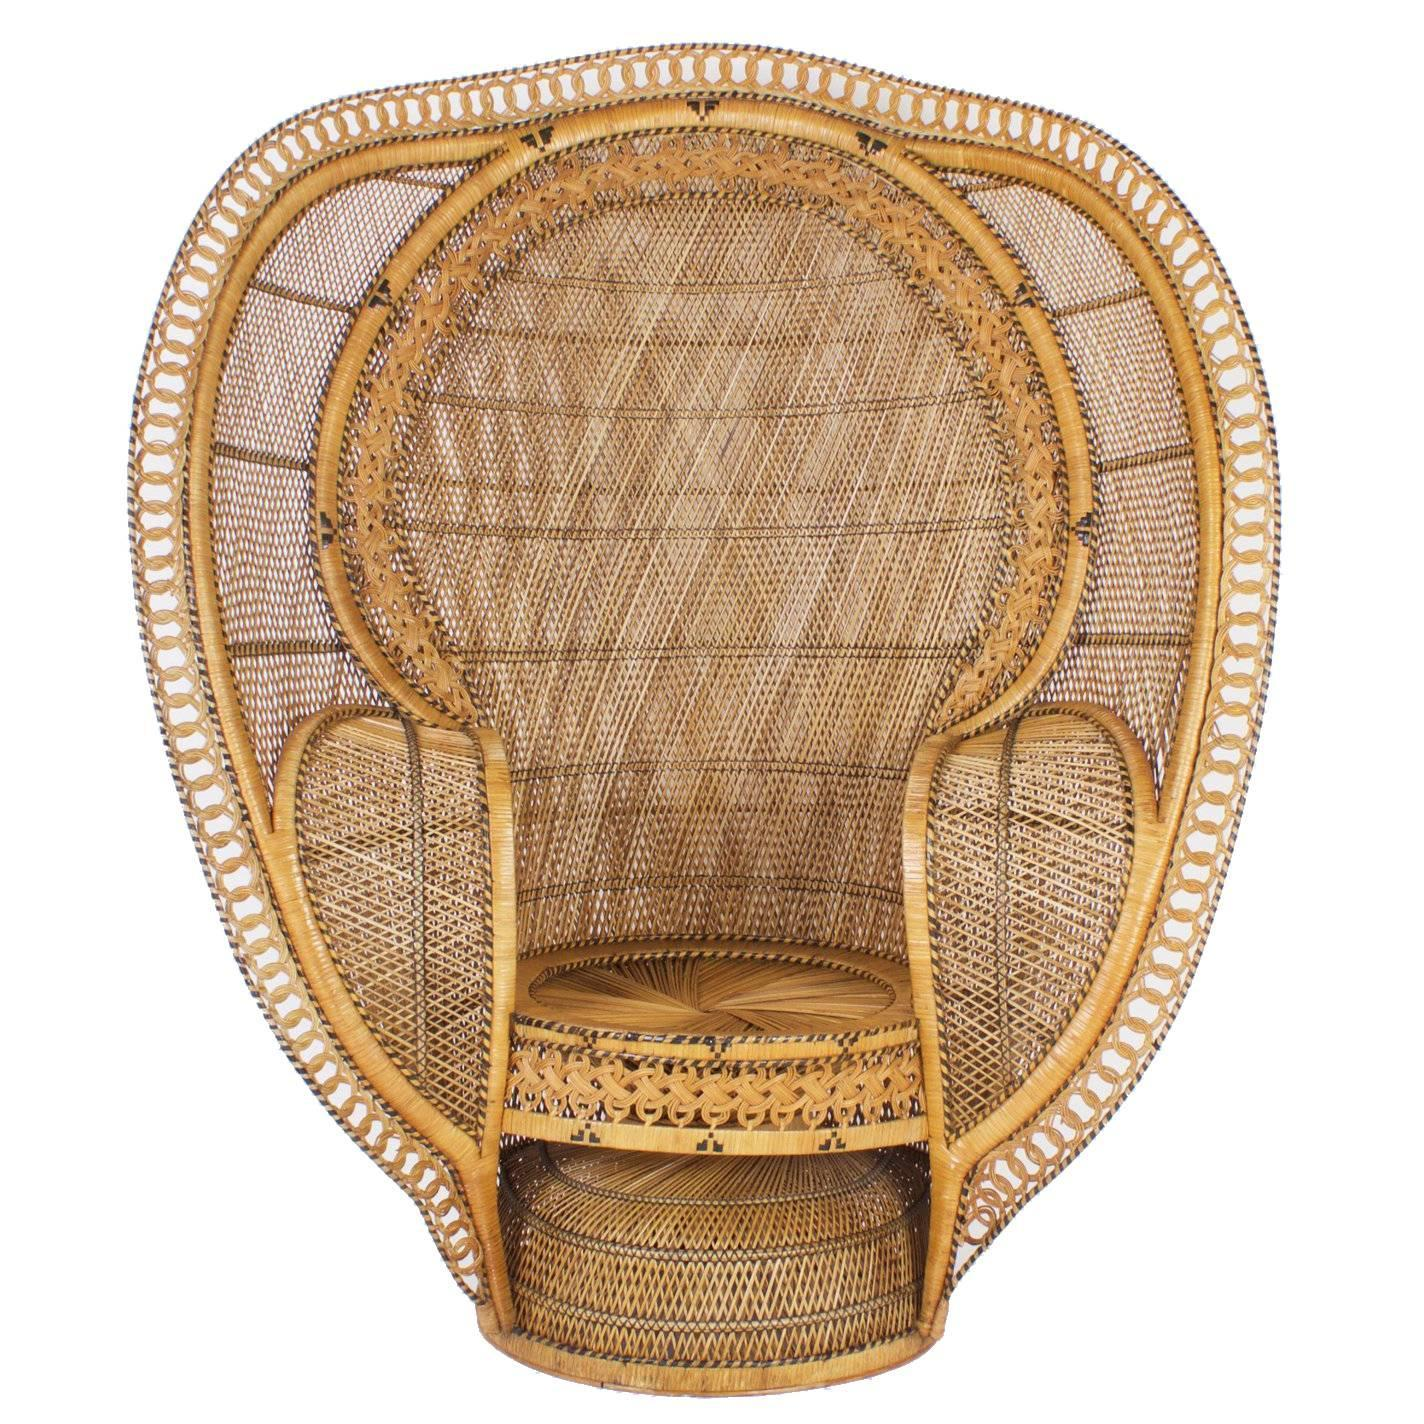 1930 s Rattan Peacock Chair For Sale at 1stdibs